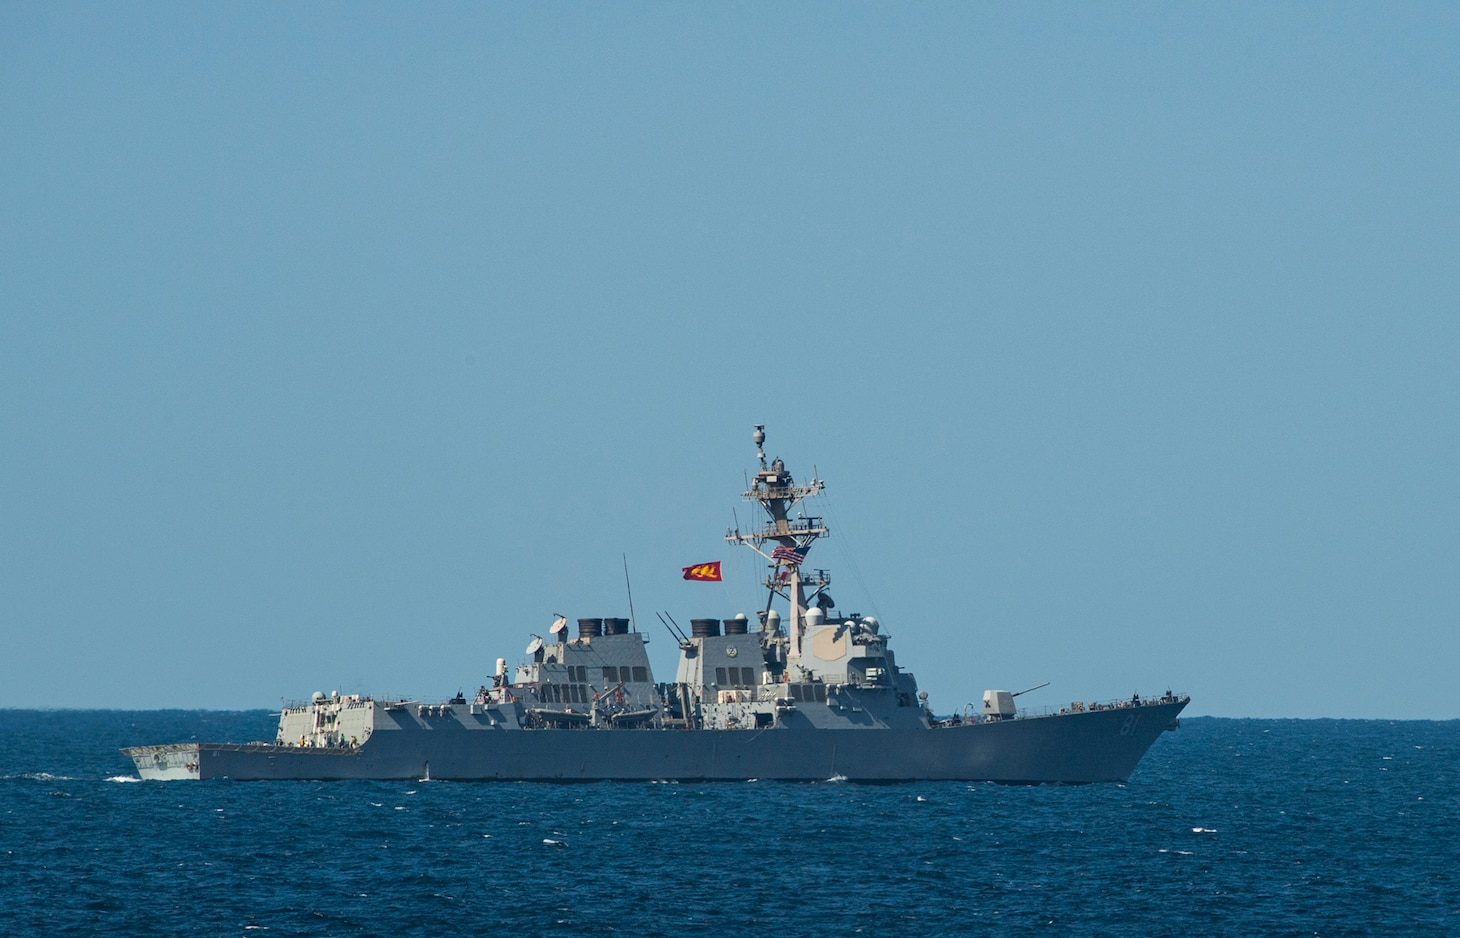 The guided-missile destroyer USS Winston S. Churchill (DDG 81) steams in the Arabian Sea.